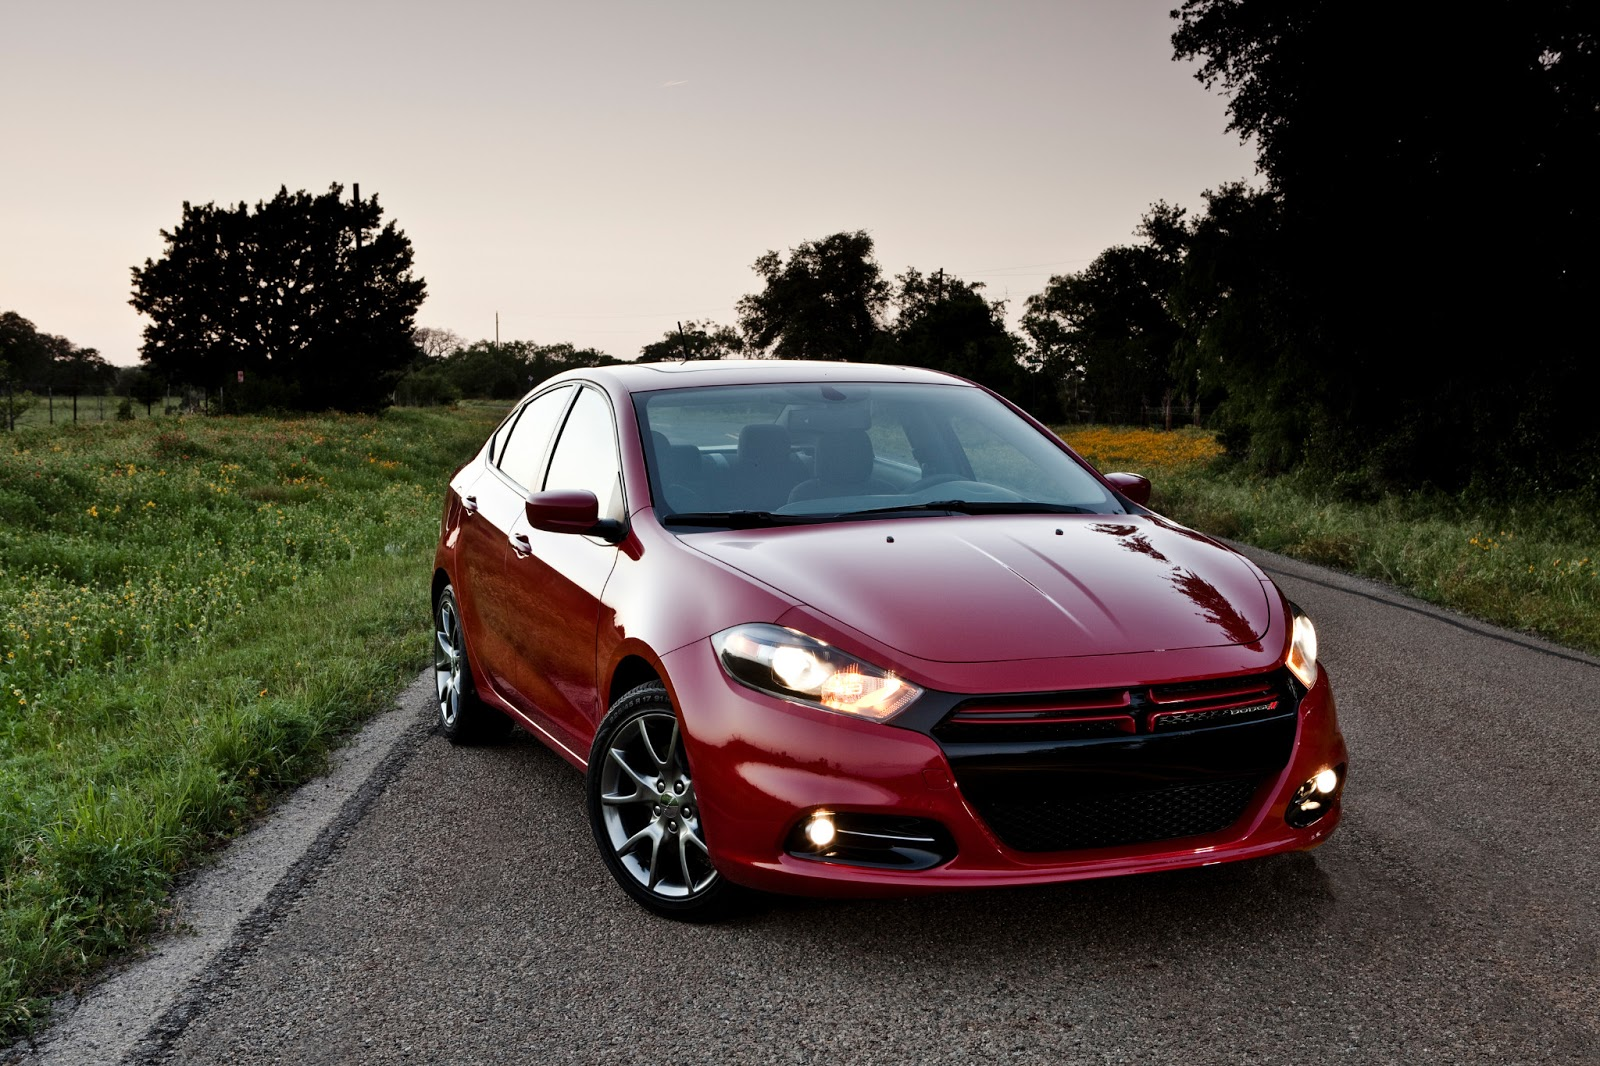 Test Driving Life: Dodge Dart - Old Name, Brand New Car